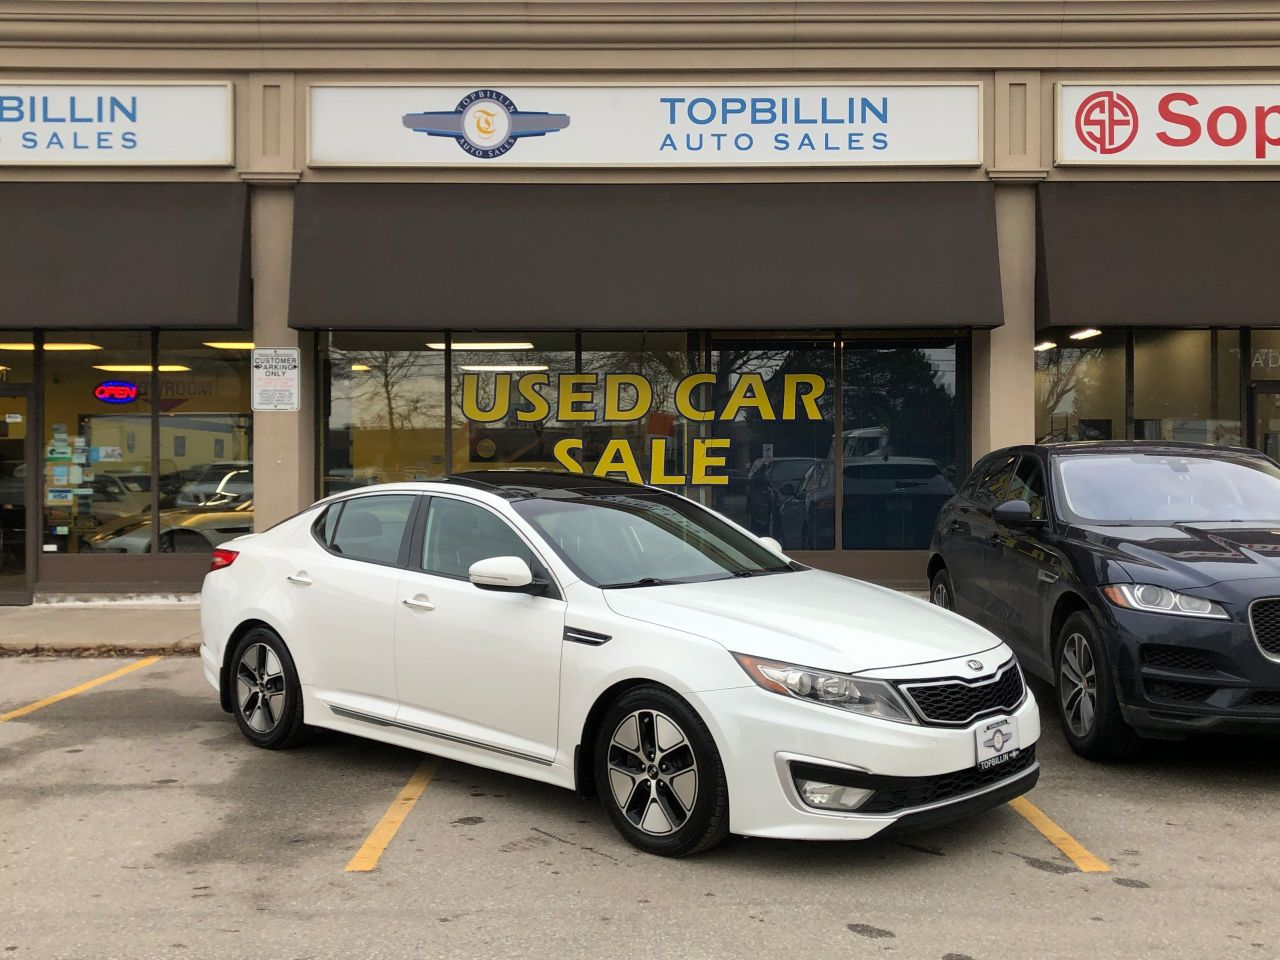 2012 Kia Optima Hybrid Premium, Fully Loaded